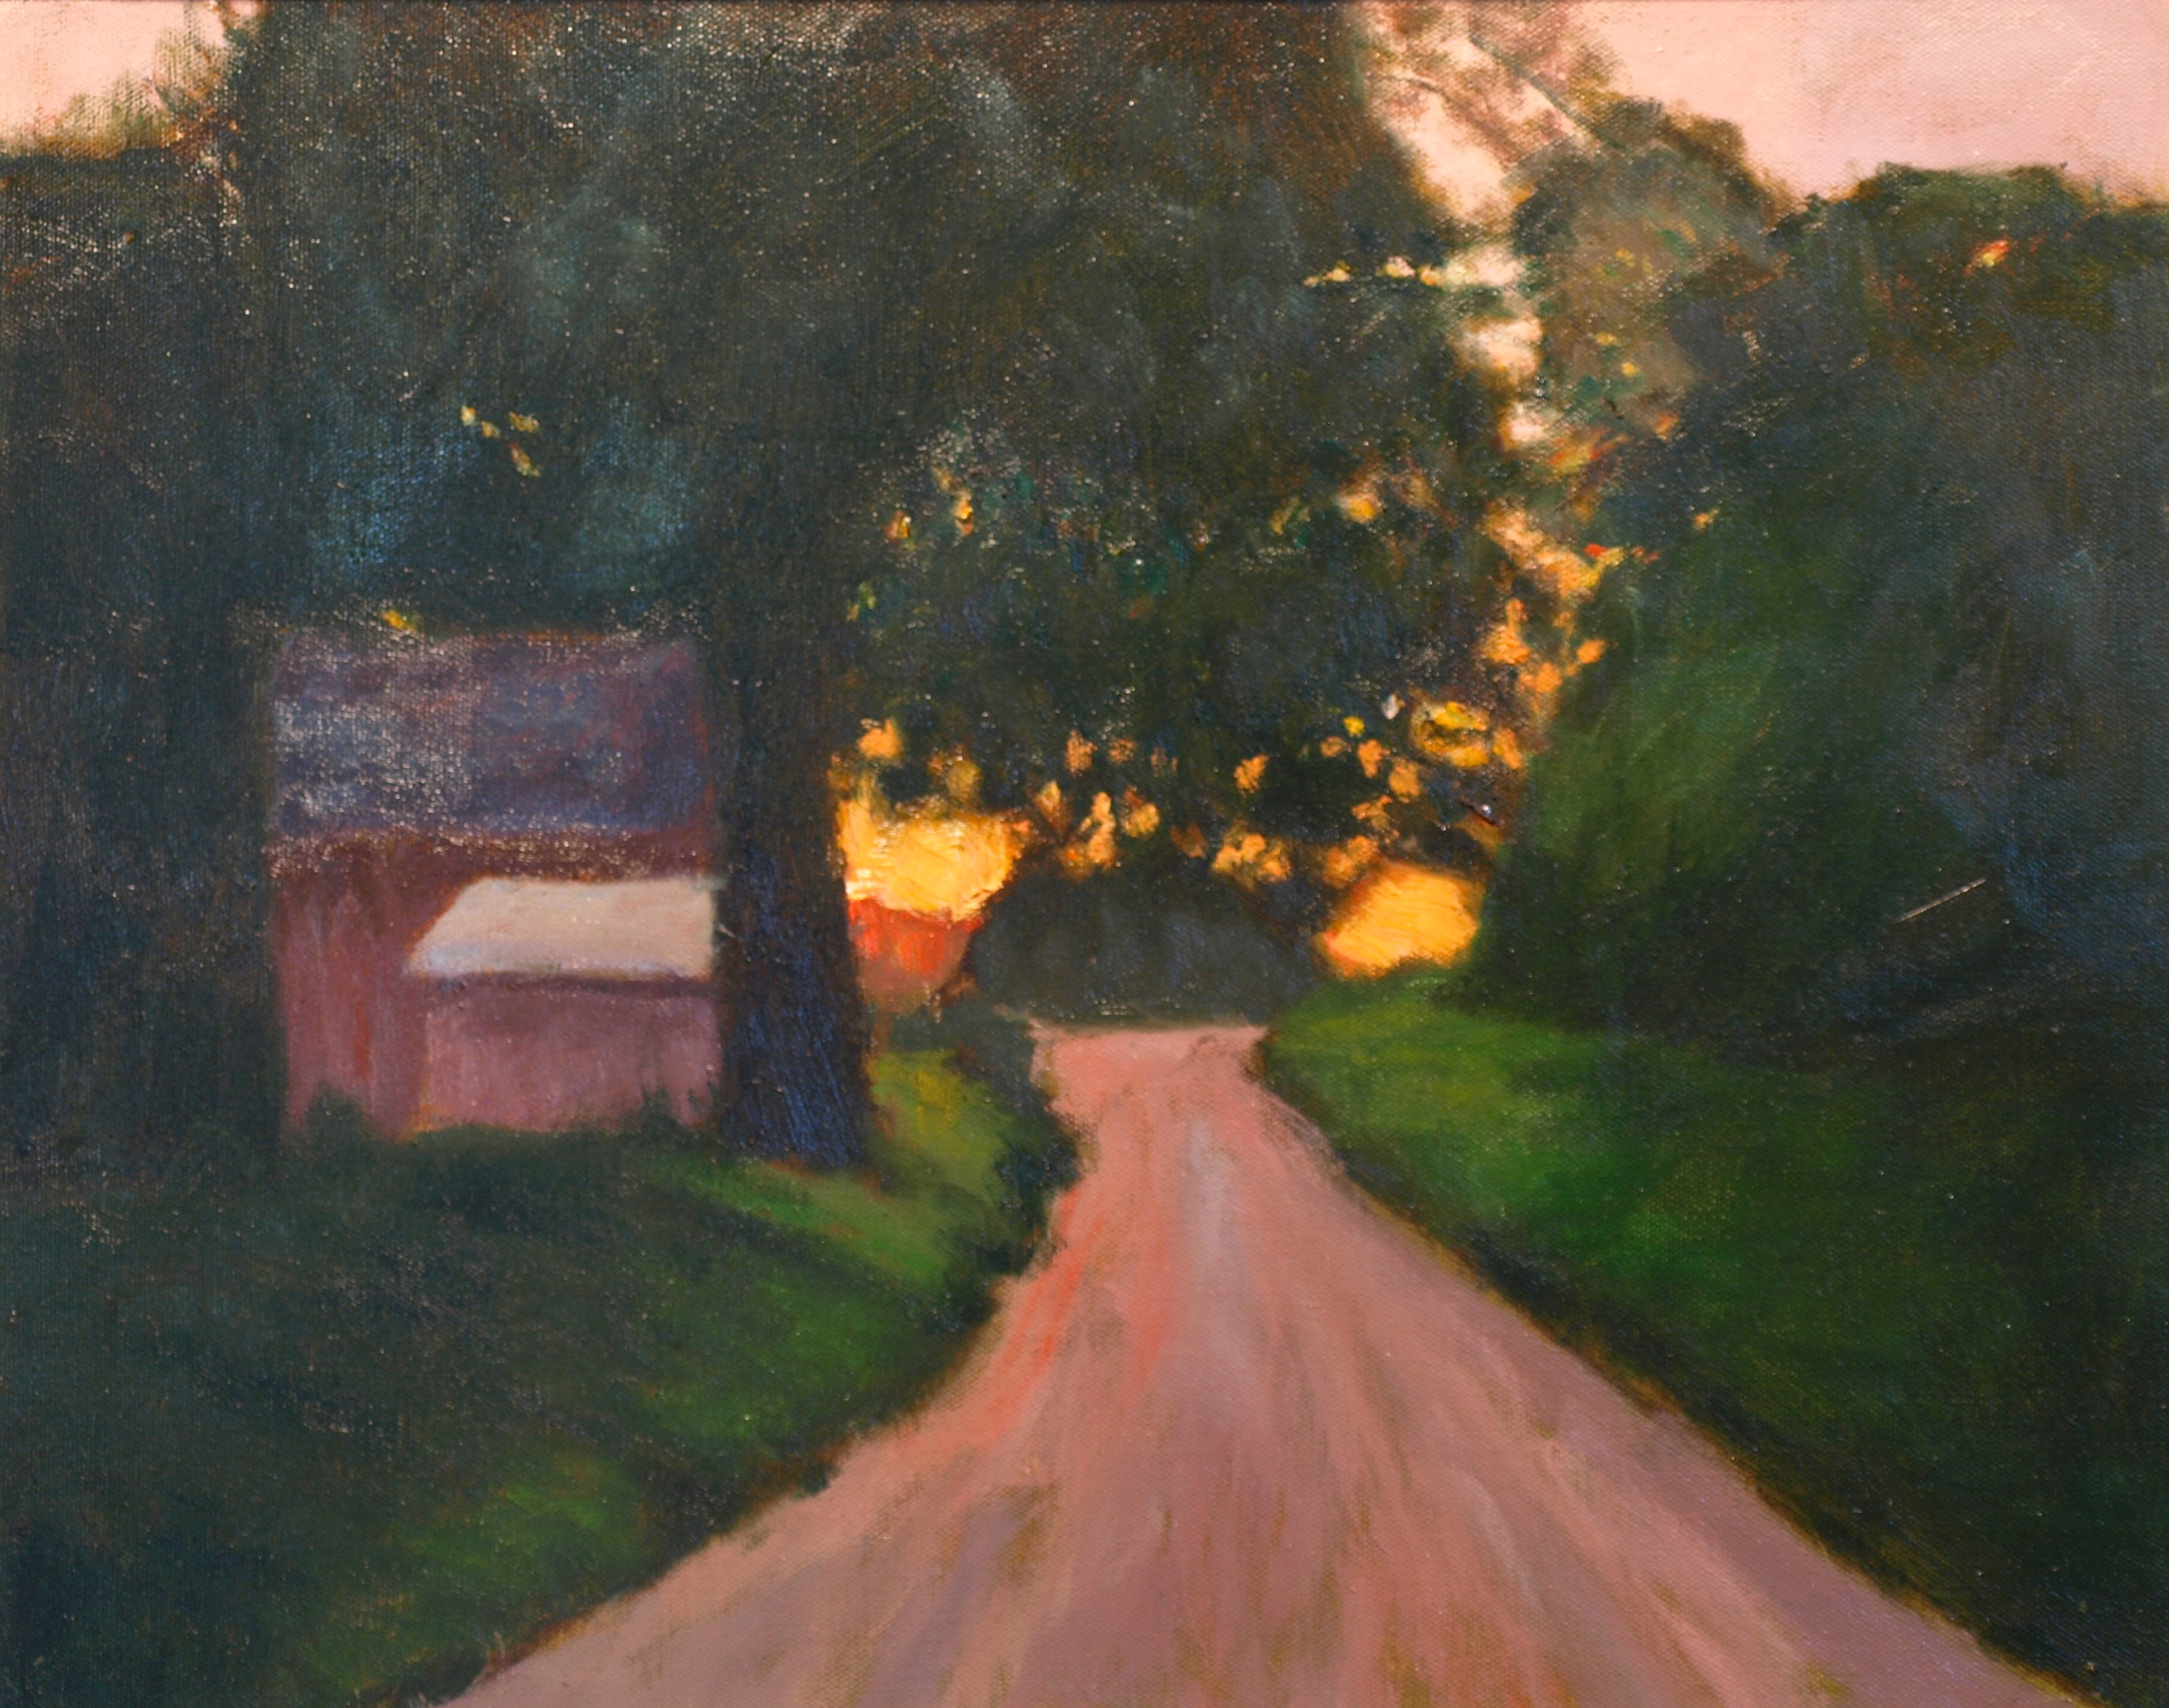 Glorious Sunset, Oil on Canvas, 20 x 24 Inches, by Richard Stalter, $650